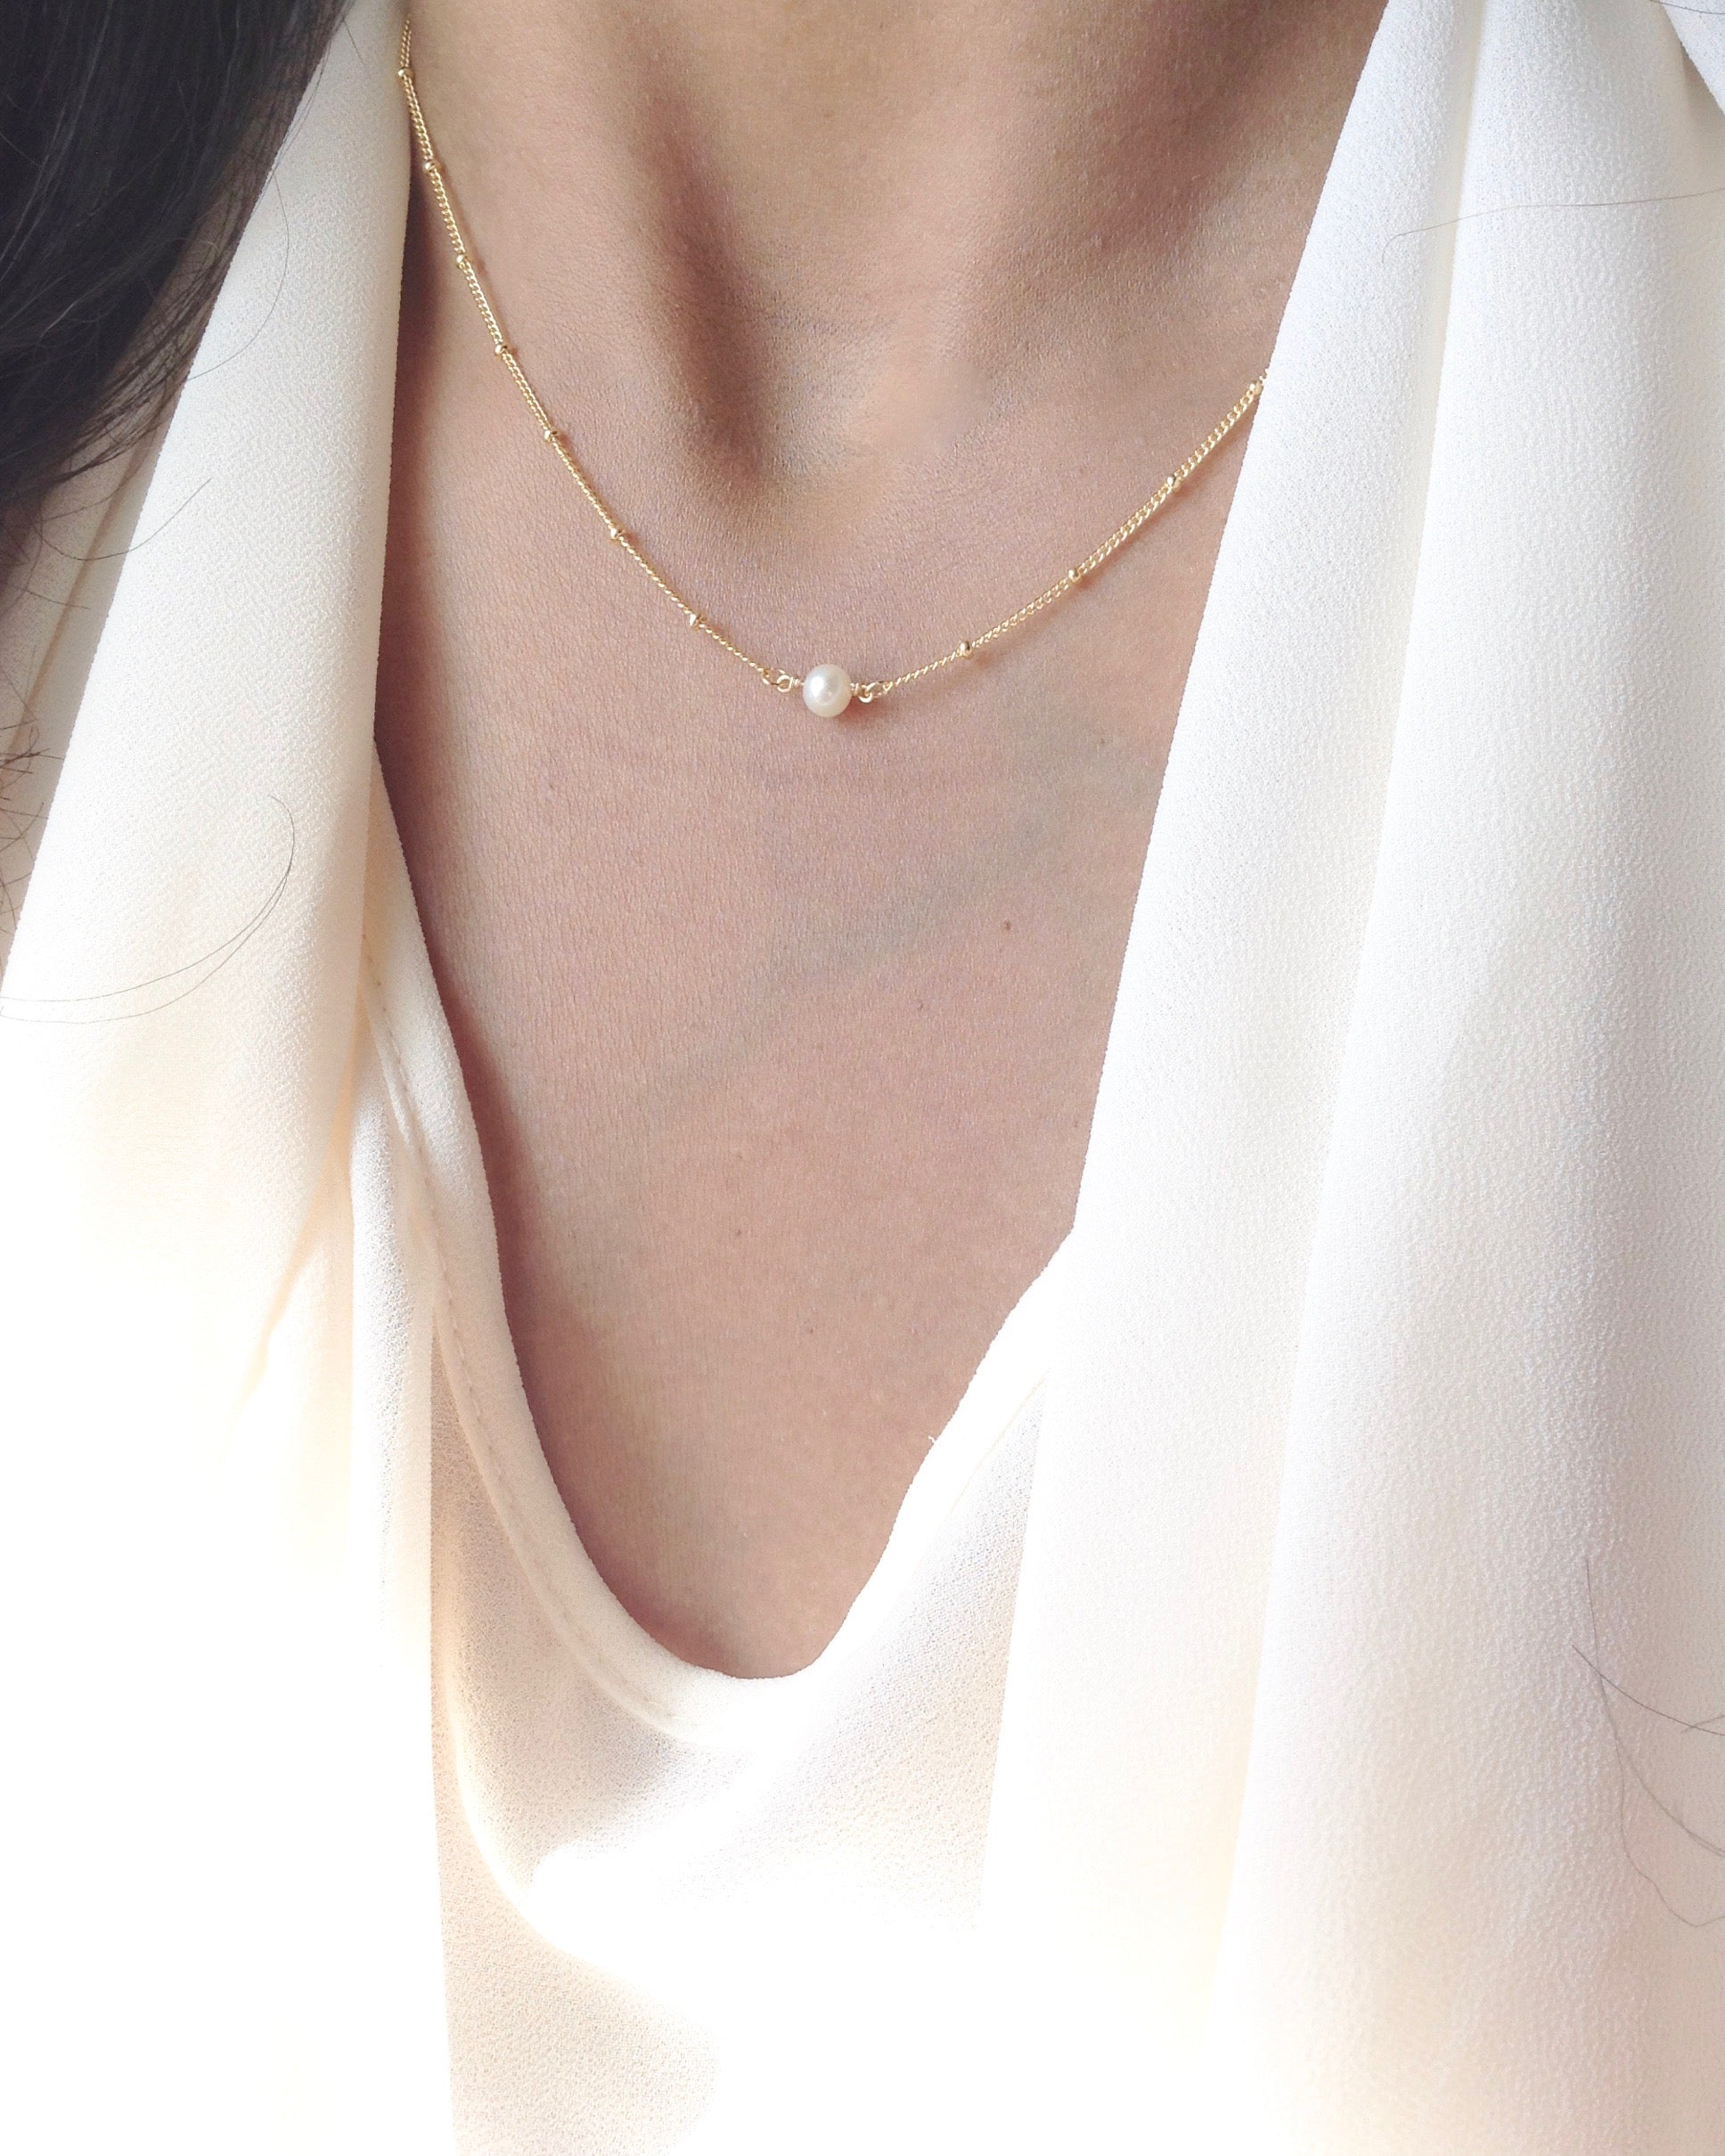 Simple Delicate Pearl Necklace | Dainty Everyday Necklace | IB Jewelry